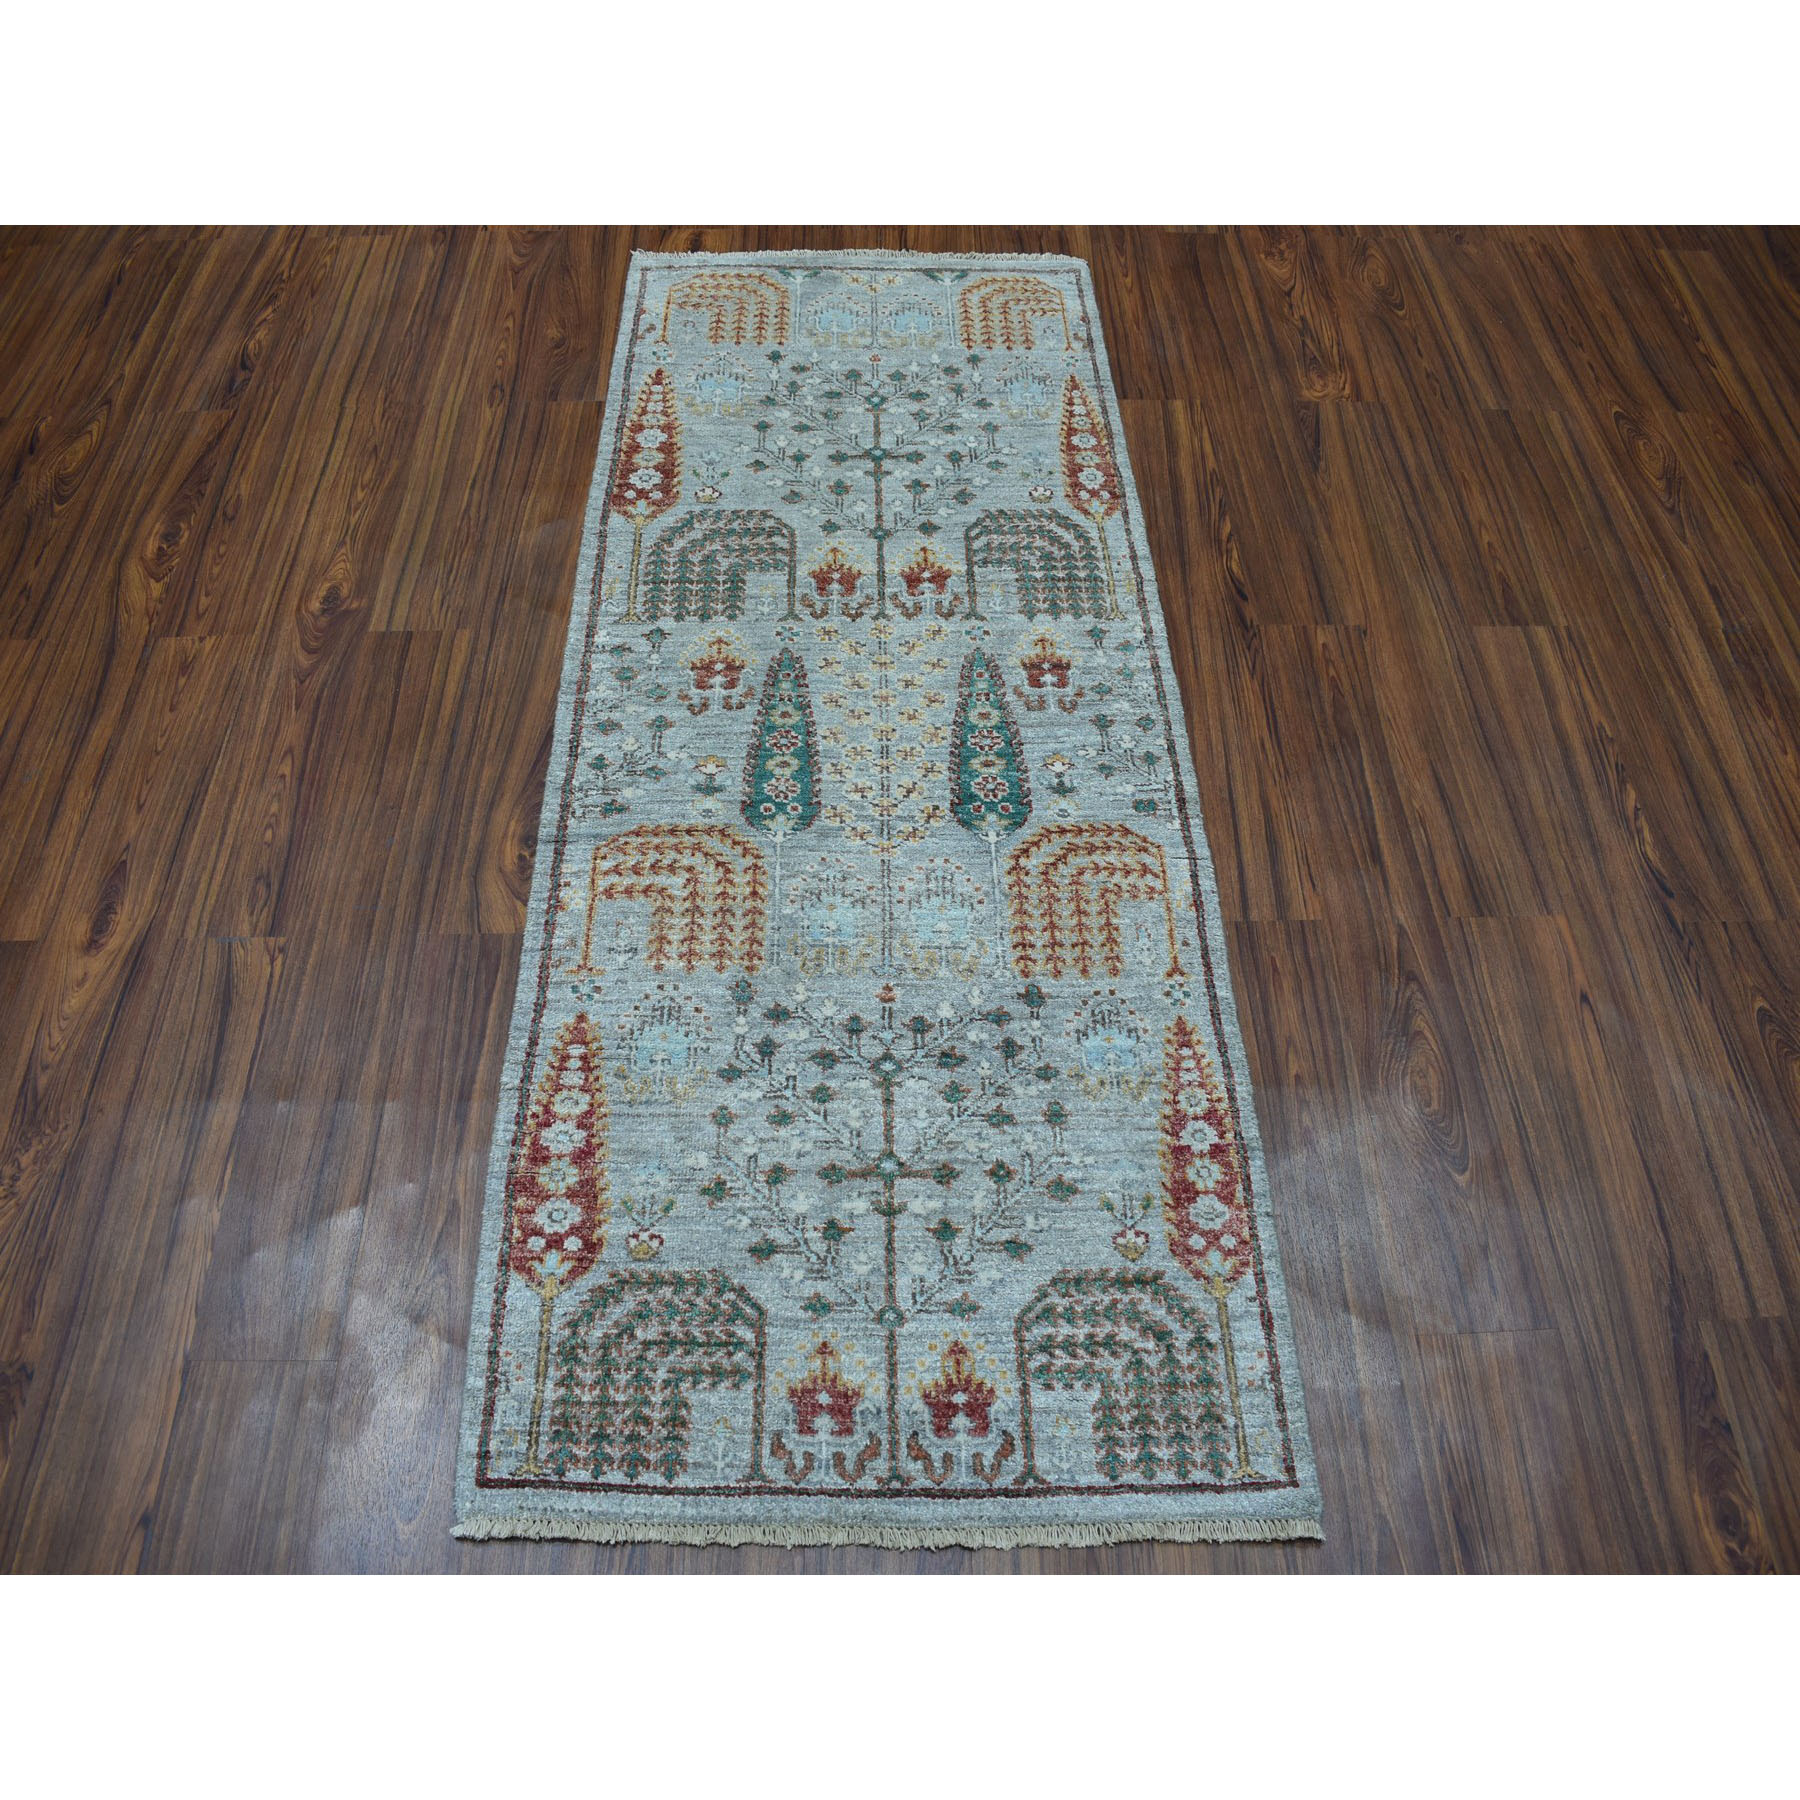 2-7 x6-1  Gray Peshawar Willow And Cypress Tree Design Hand-Knotted Oriental Runner Rug